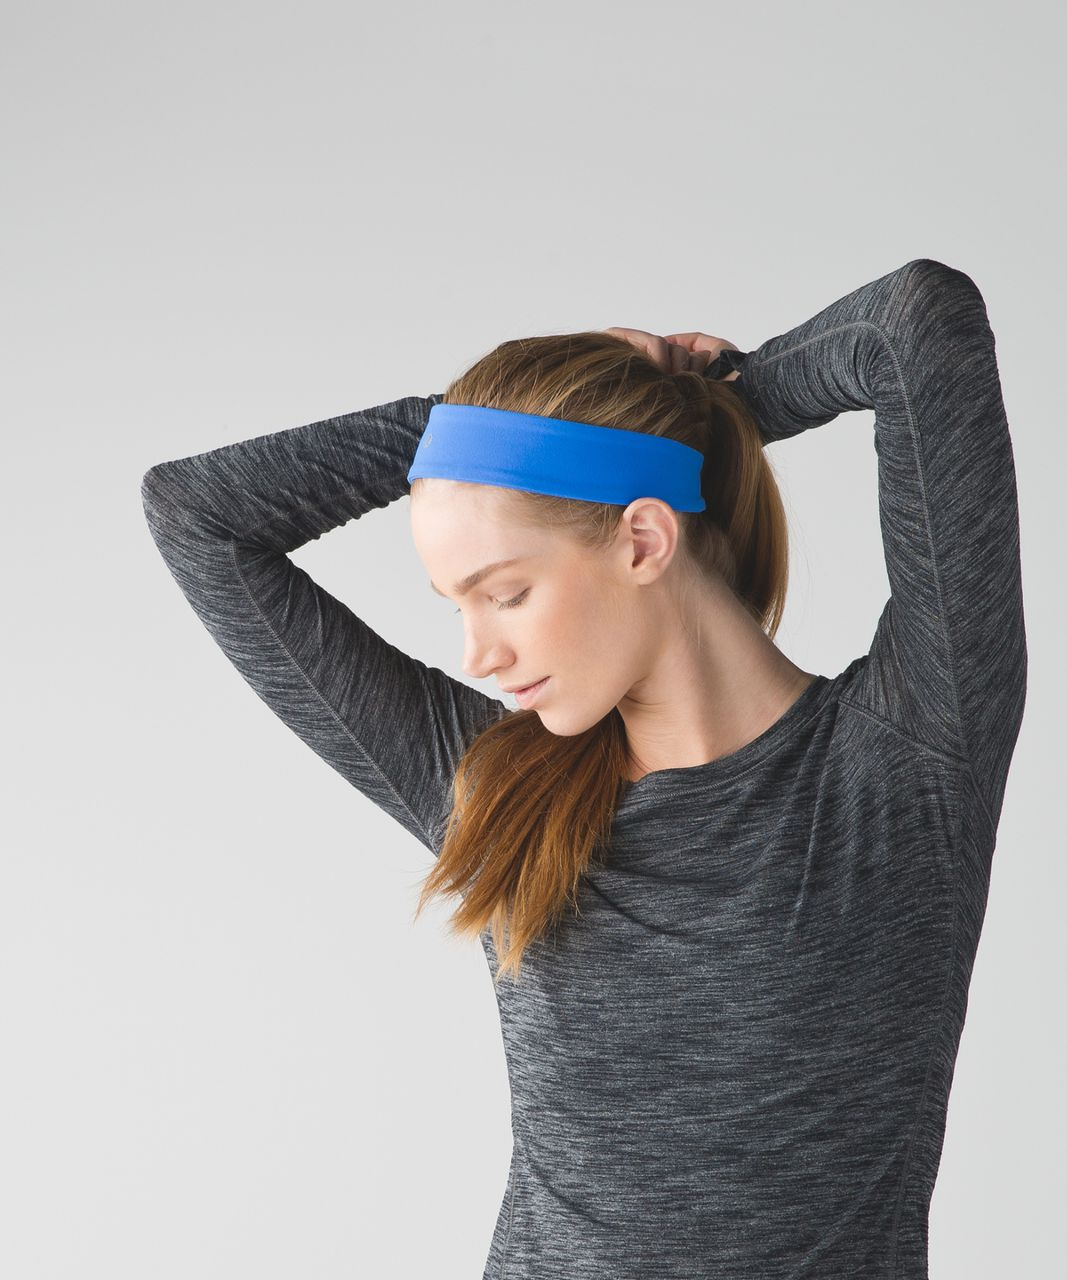 Lululemon Fly Away Tamer Headband 2.0 - Pipe Dream Blue